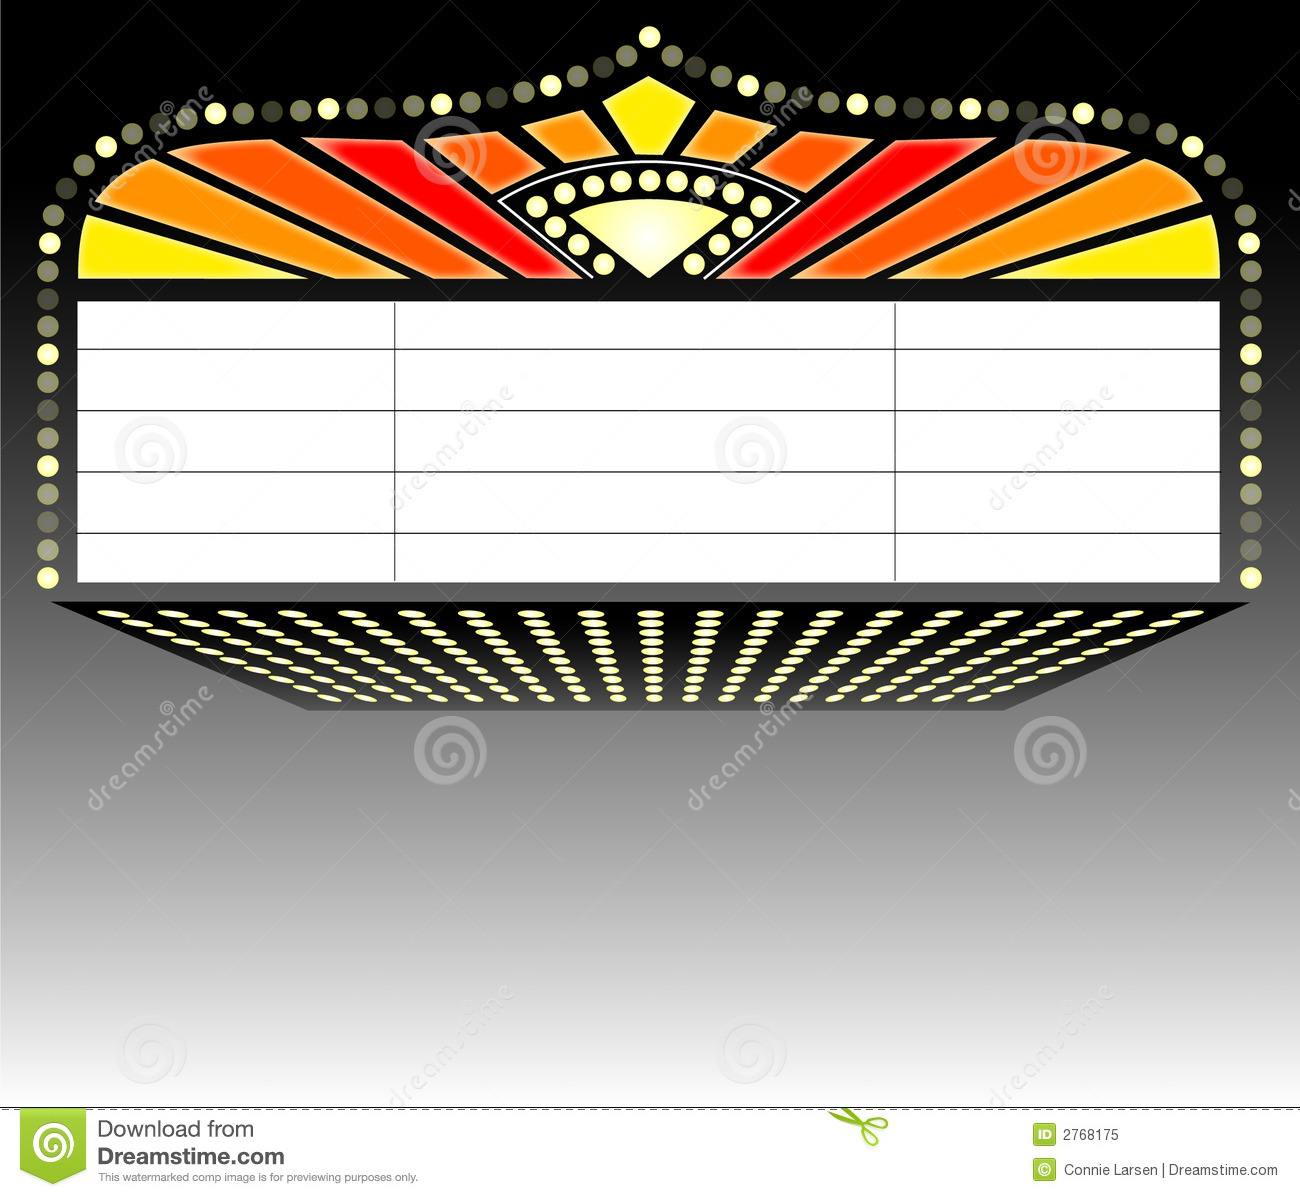 Neon Sign clipart broadway theatre Sign Movie marquee Clipart clipart